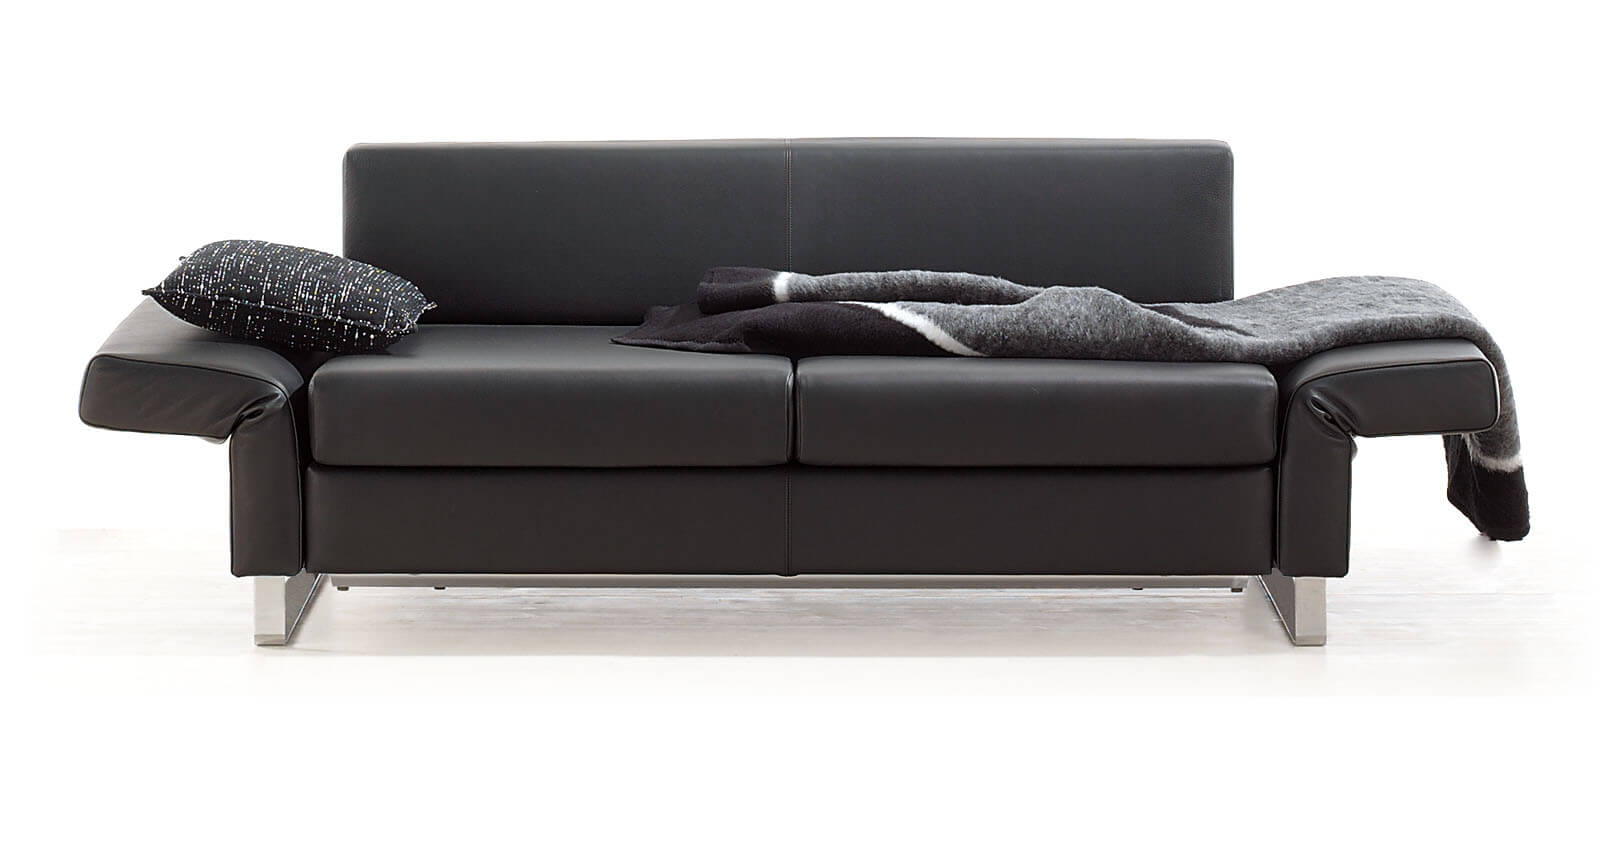 schlafsofa intro von franz fertig. Black Bedroom Furniture Sets. Home Design Ideas